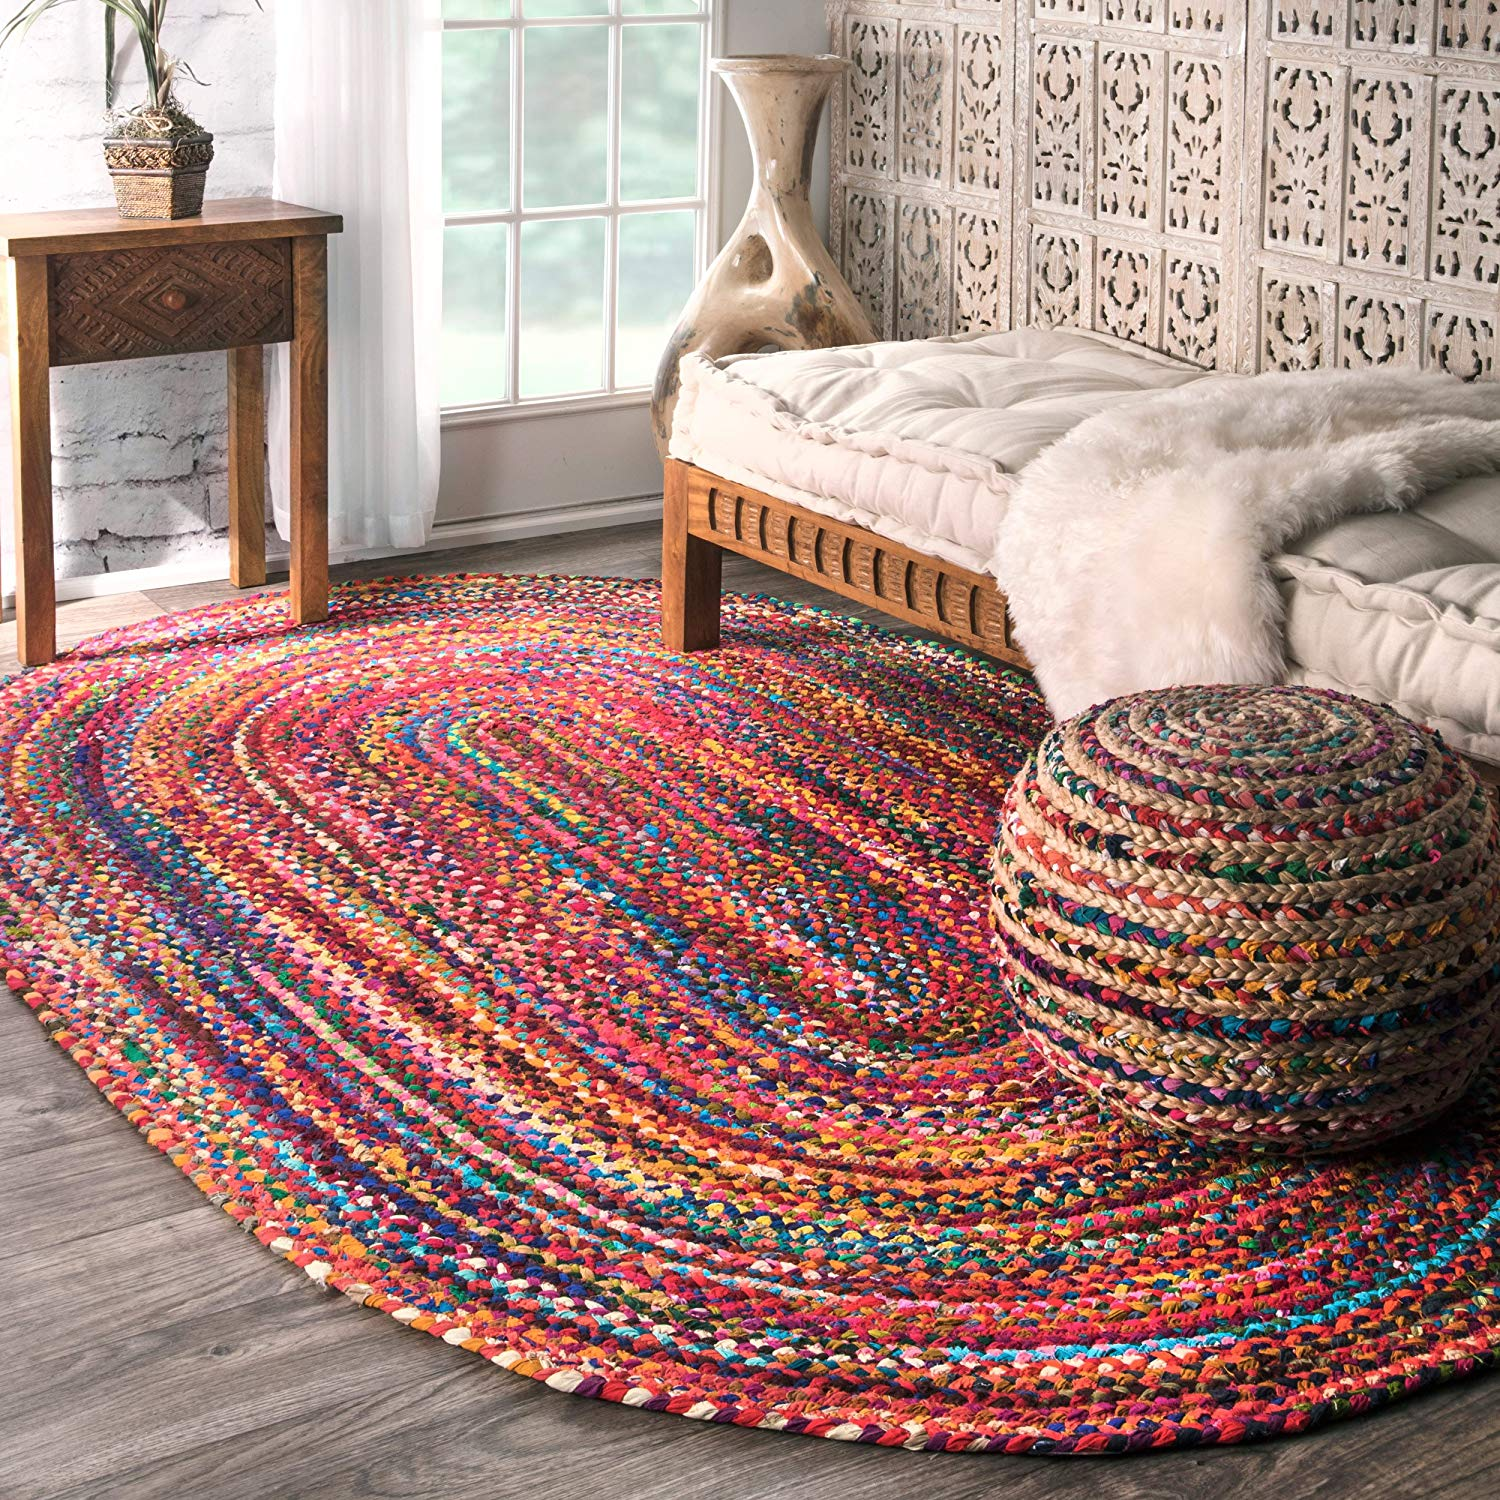 How to buy a handmade rug?